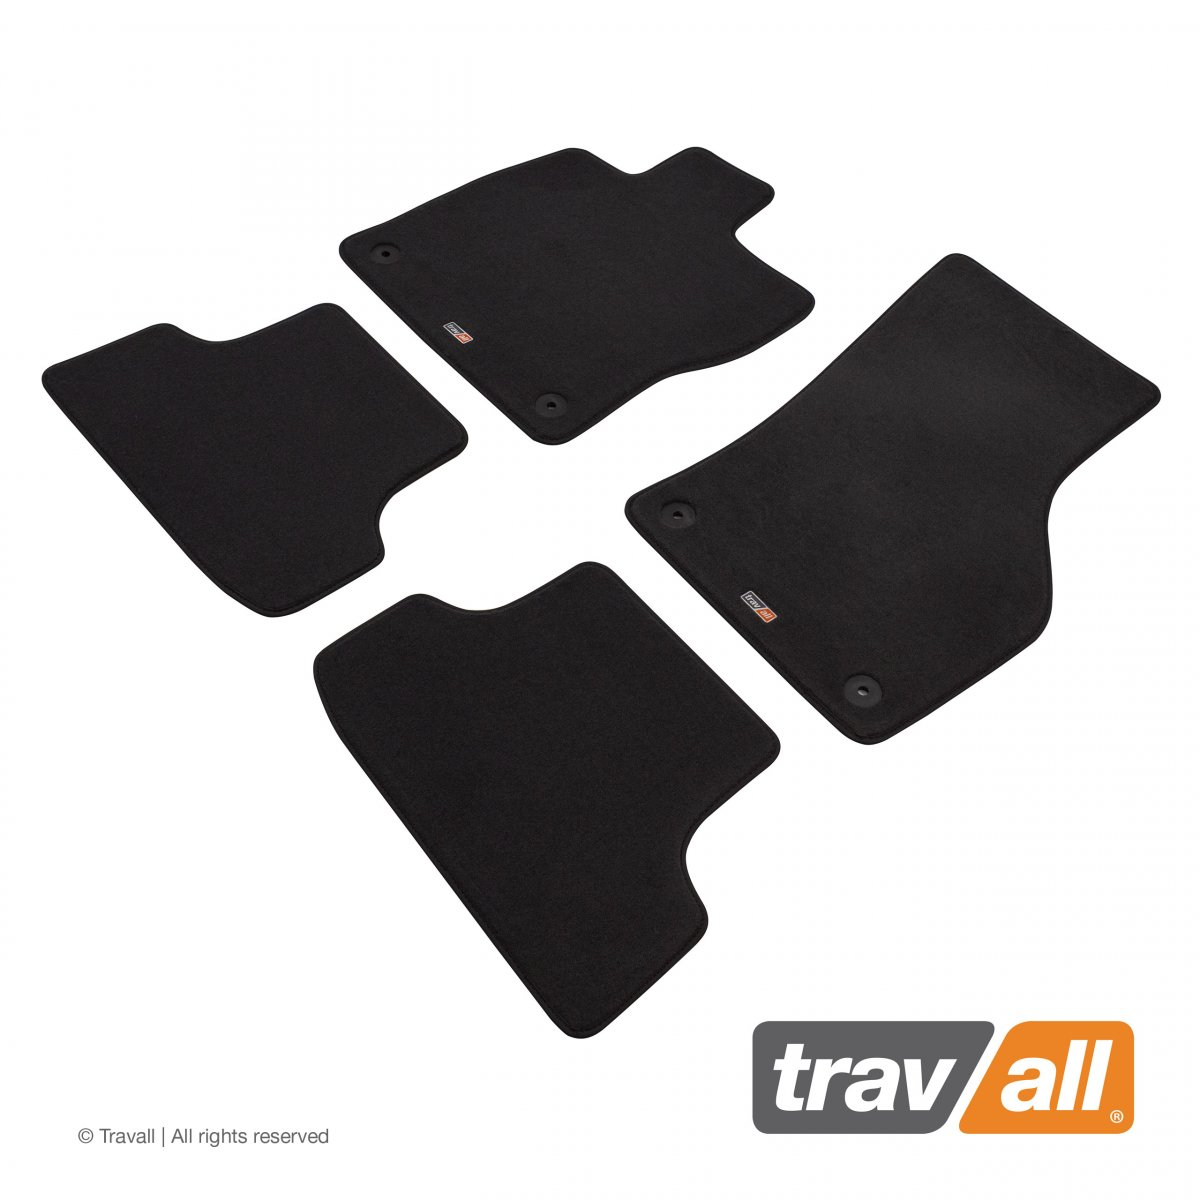 Travall® MATS [LHD] for Audi A3/S3 Saloon / Hatchback (2012 - 2016)